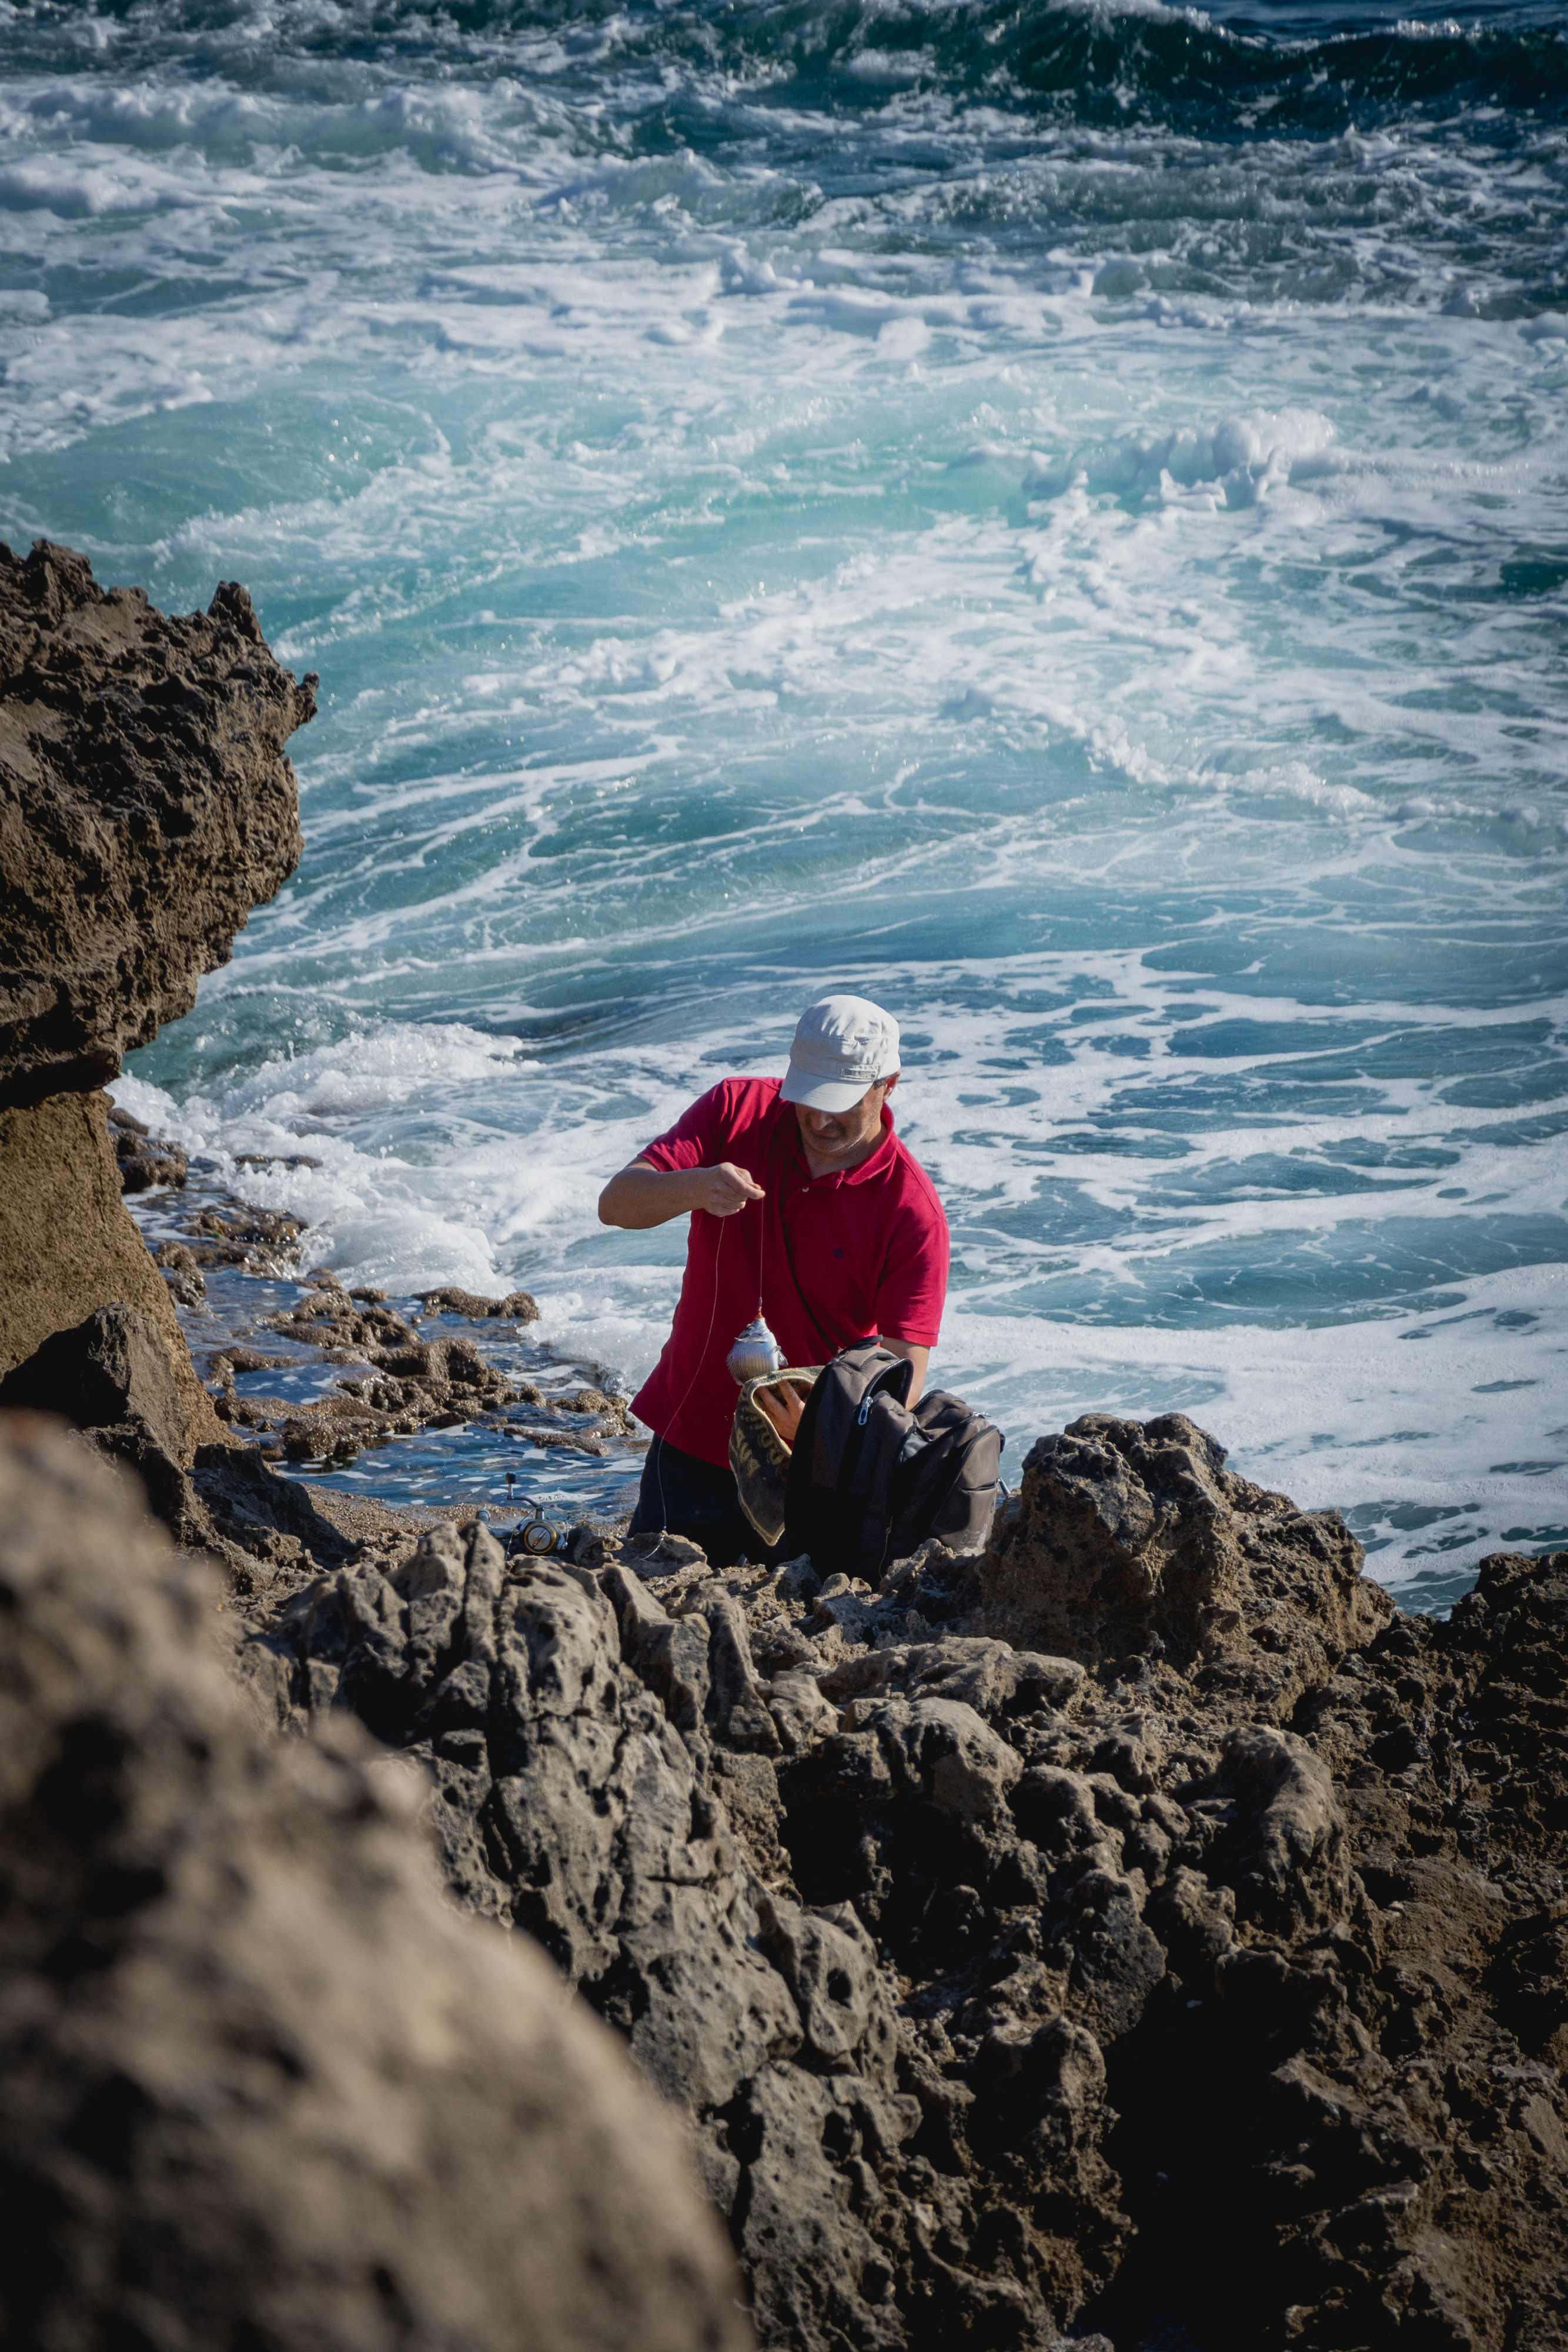 man in red jacket sitting on rock formation near sea during daytime